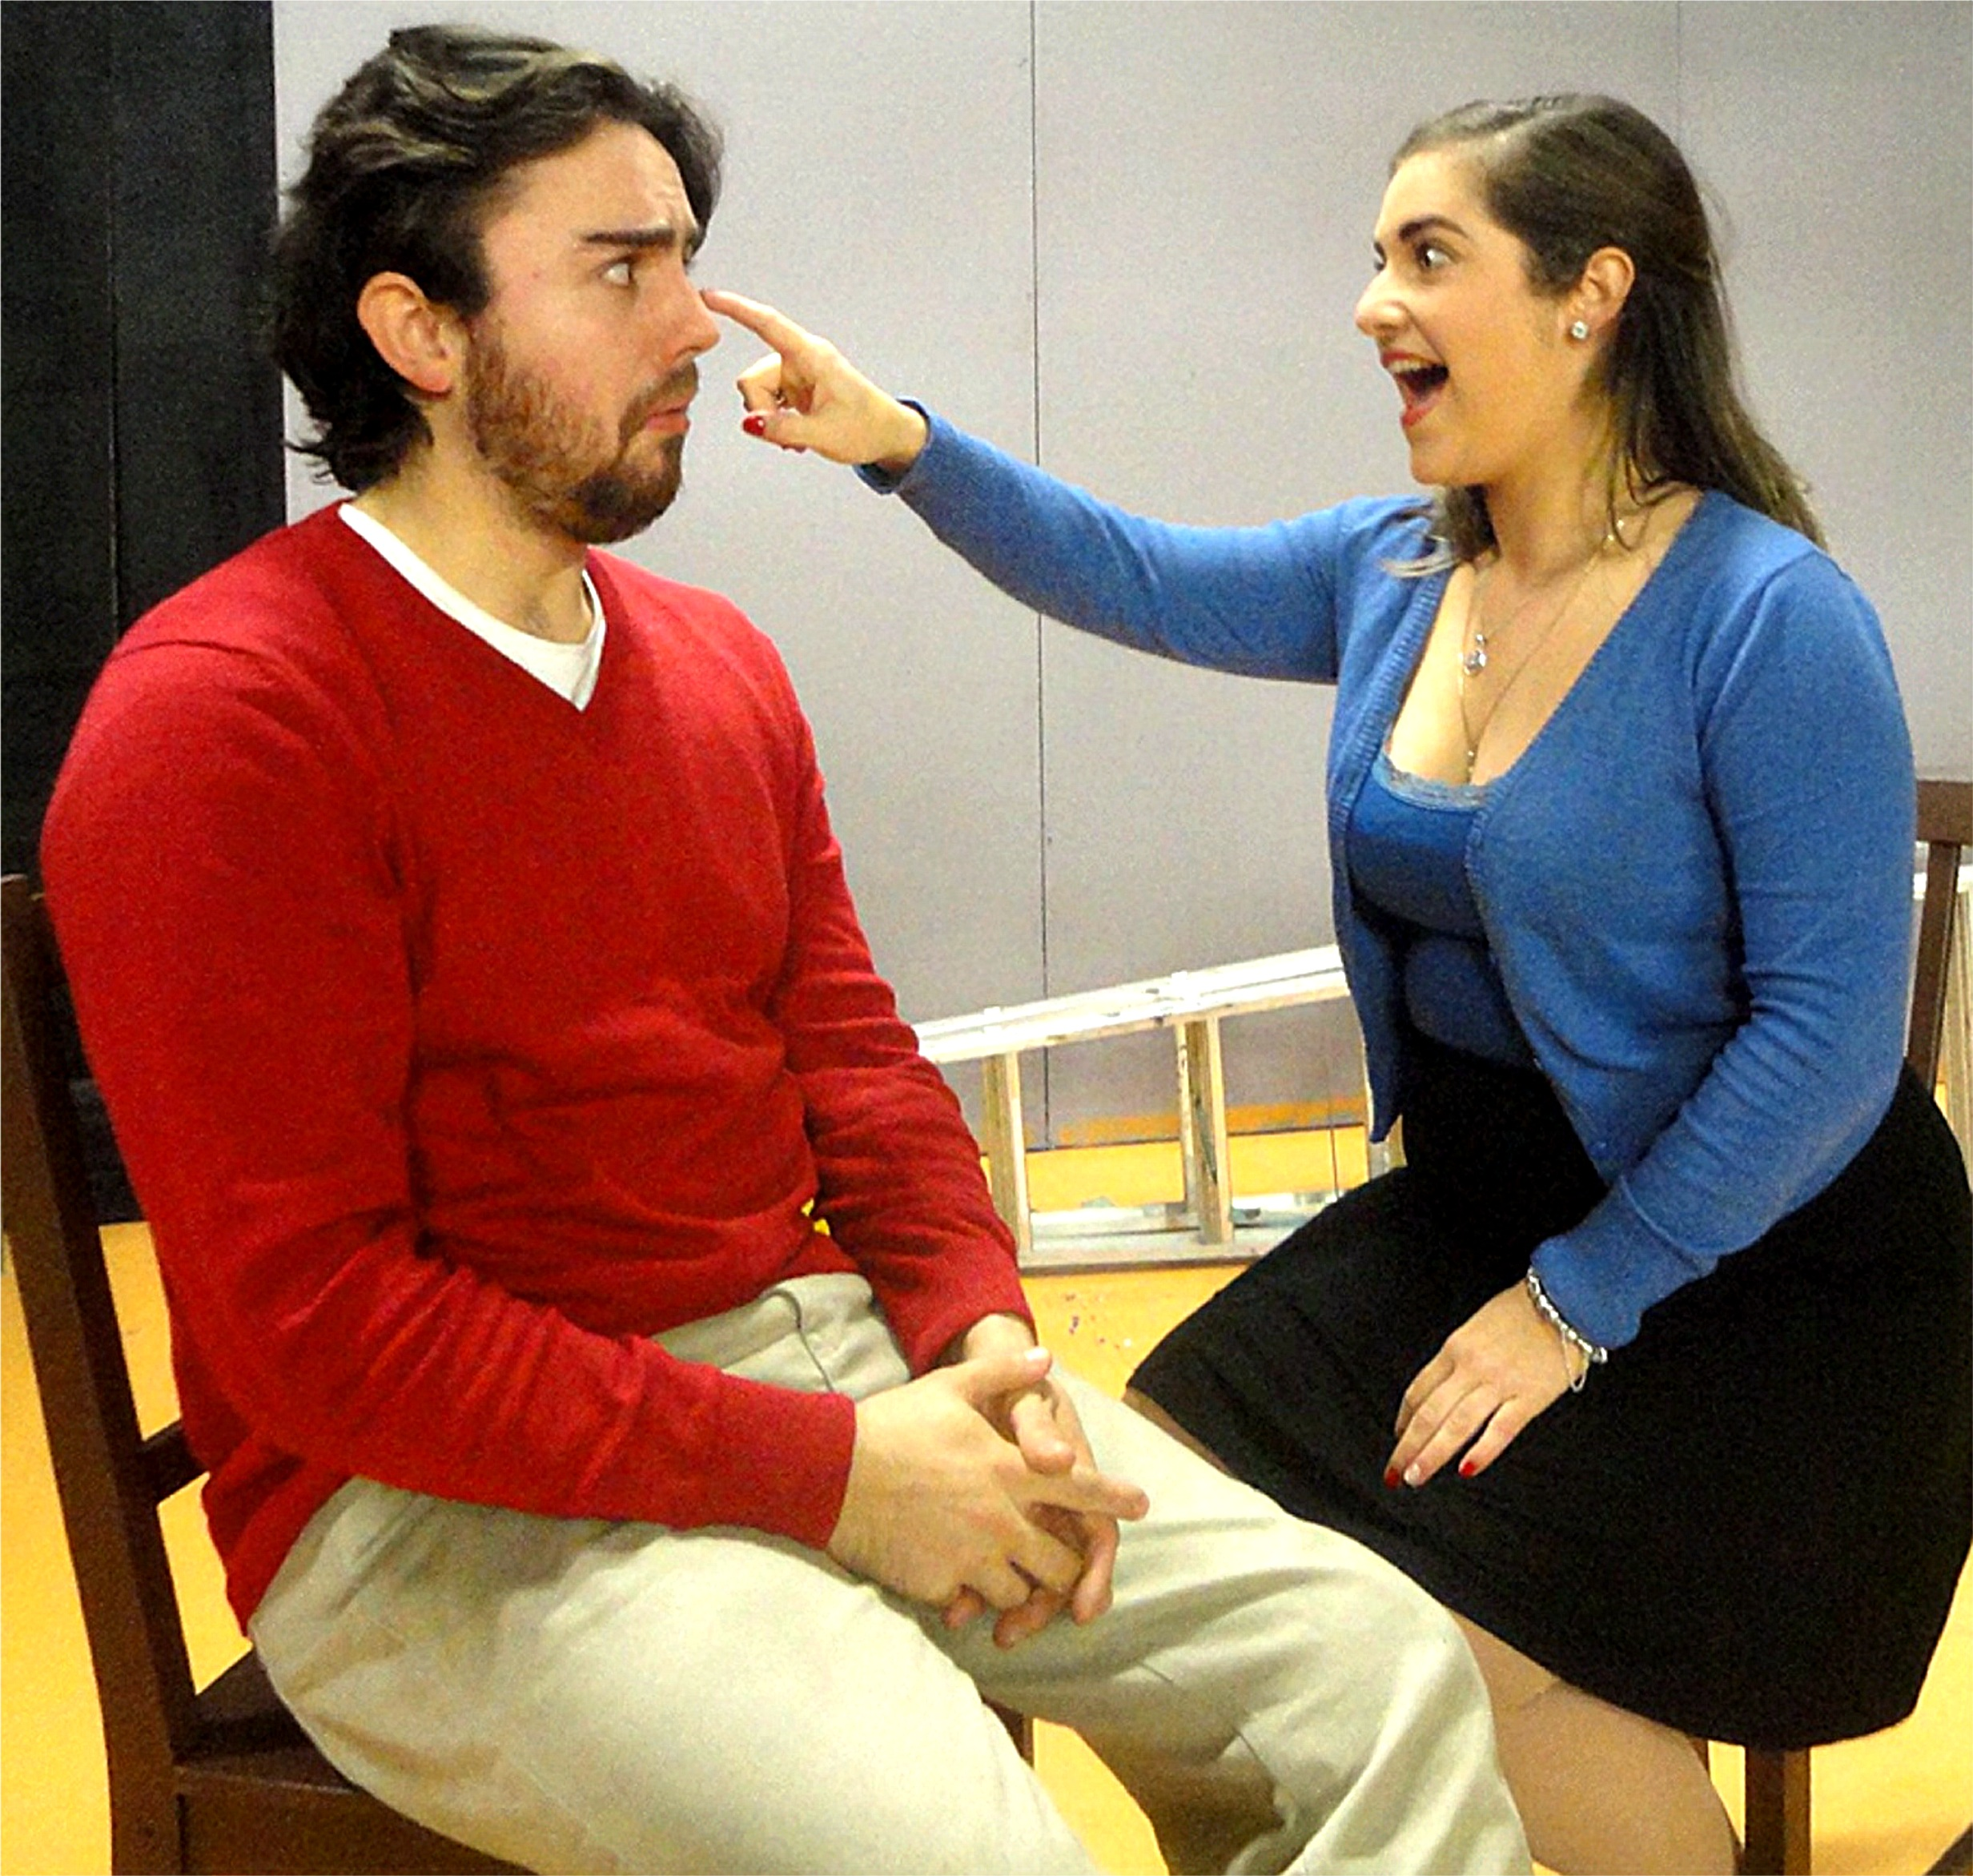 Sam Barnett, left, and Kimberley Harris play Doug and Kayleen from the ages of eight through to 38 in the darkly humorous  Gruesome Playground Injuries .